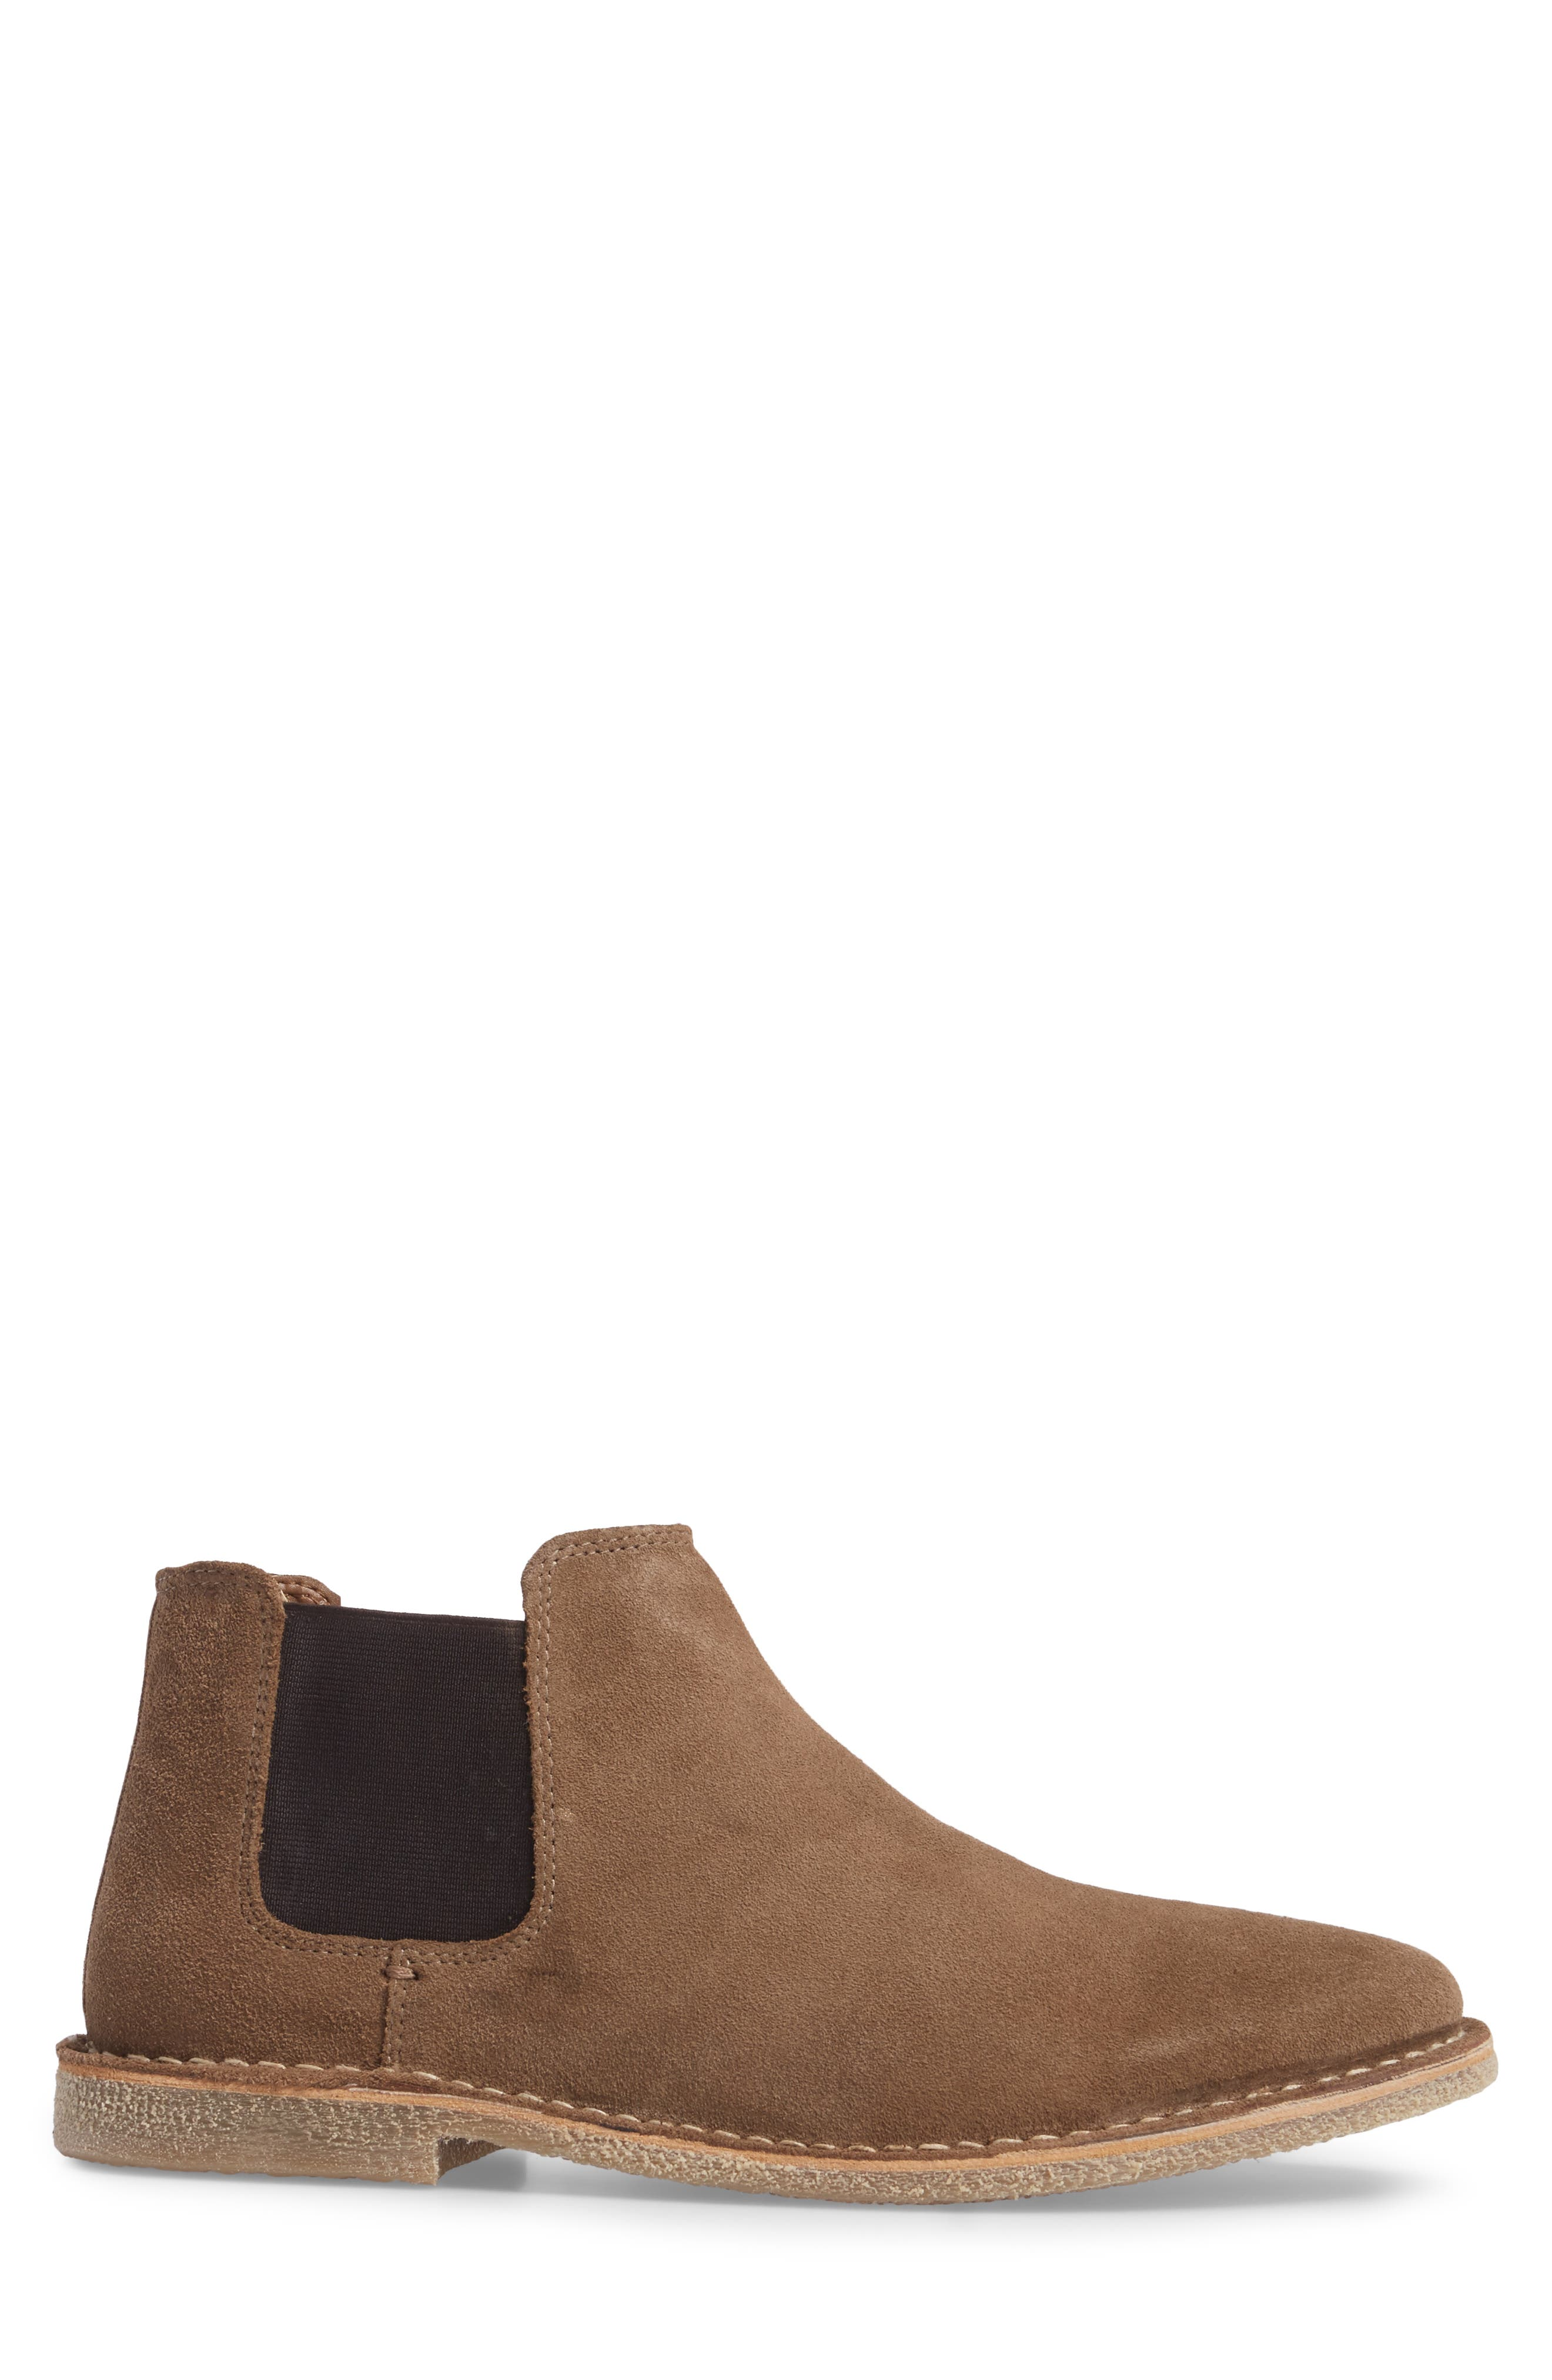 Kenneth Cole Reaction Chelsea Boot,                             Alternate thumbnail 3, color,                             205